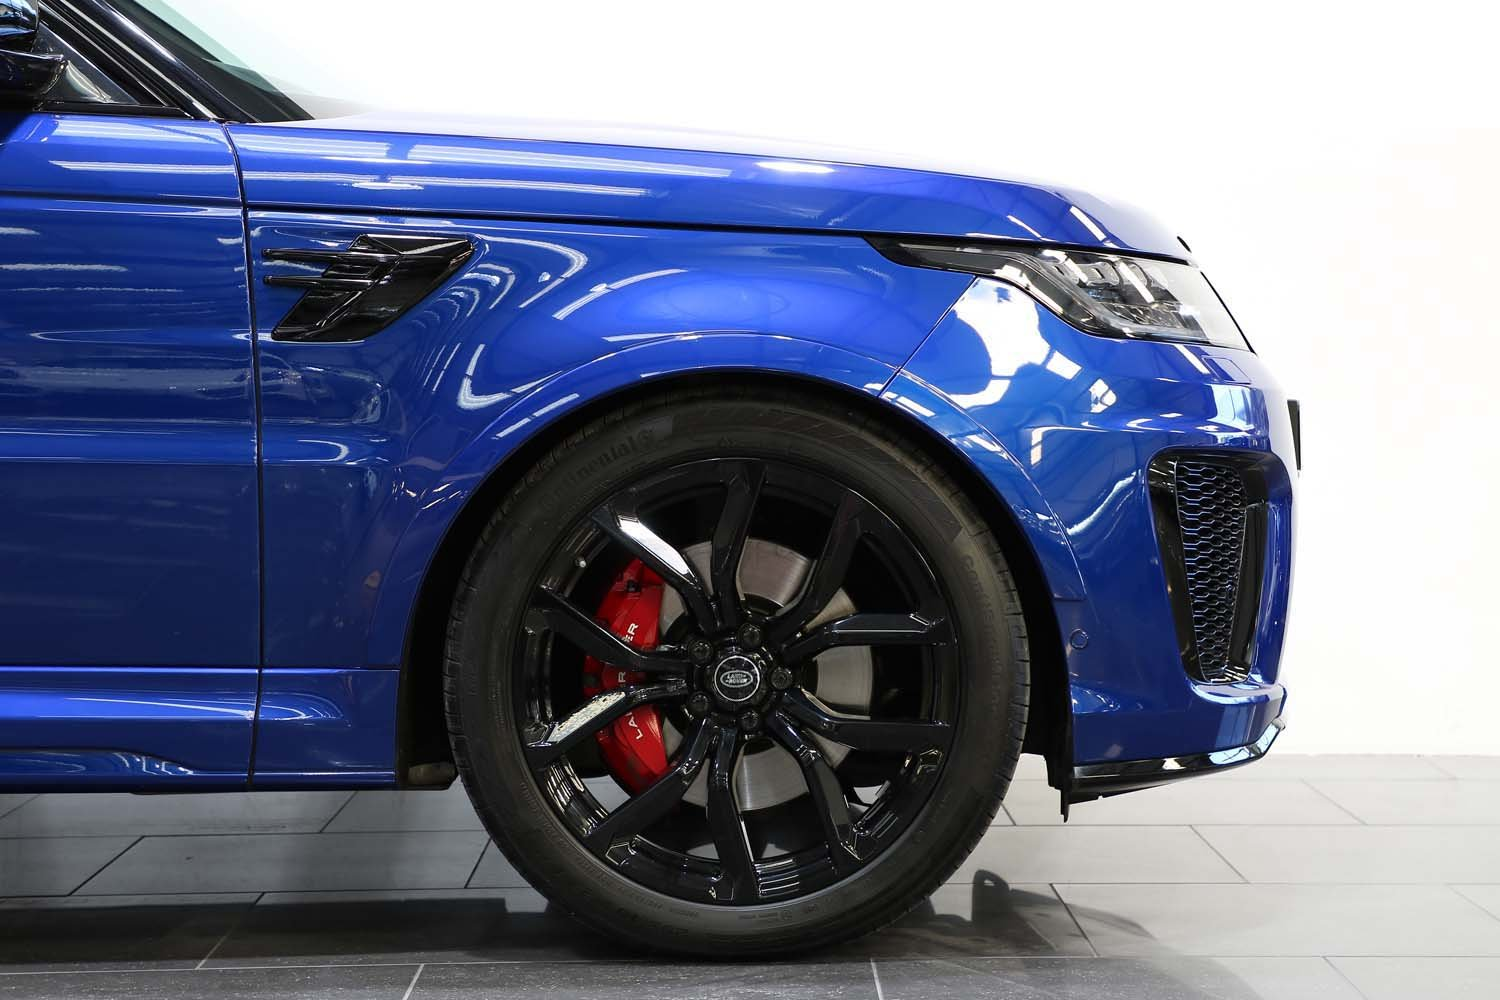 2018 18 RANGE ROVER 5.0 V8 SUPERCHARGED SVR AUTO For Sale (picture 4 of 6)